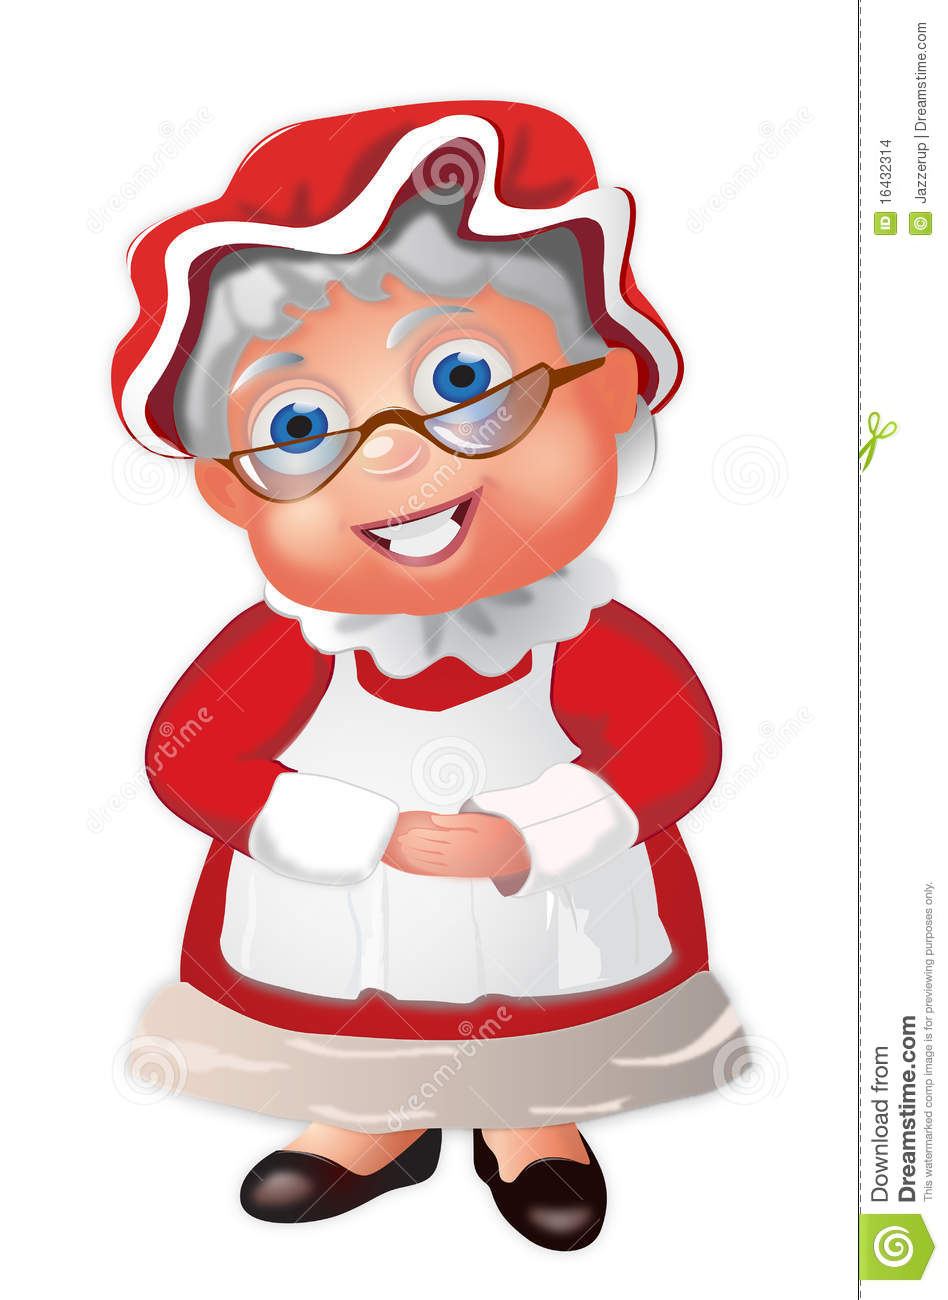 Mrs Claus with a bonnet and her hands folded.